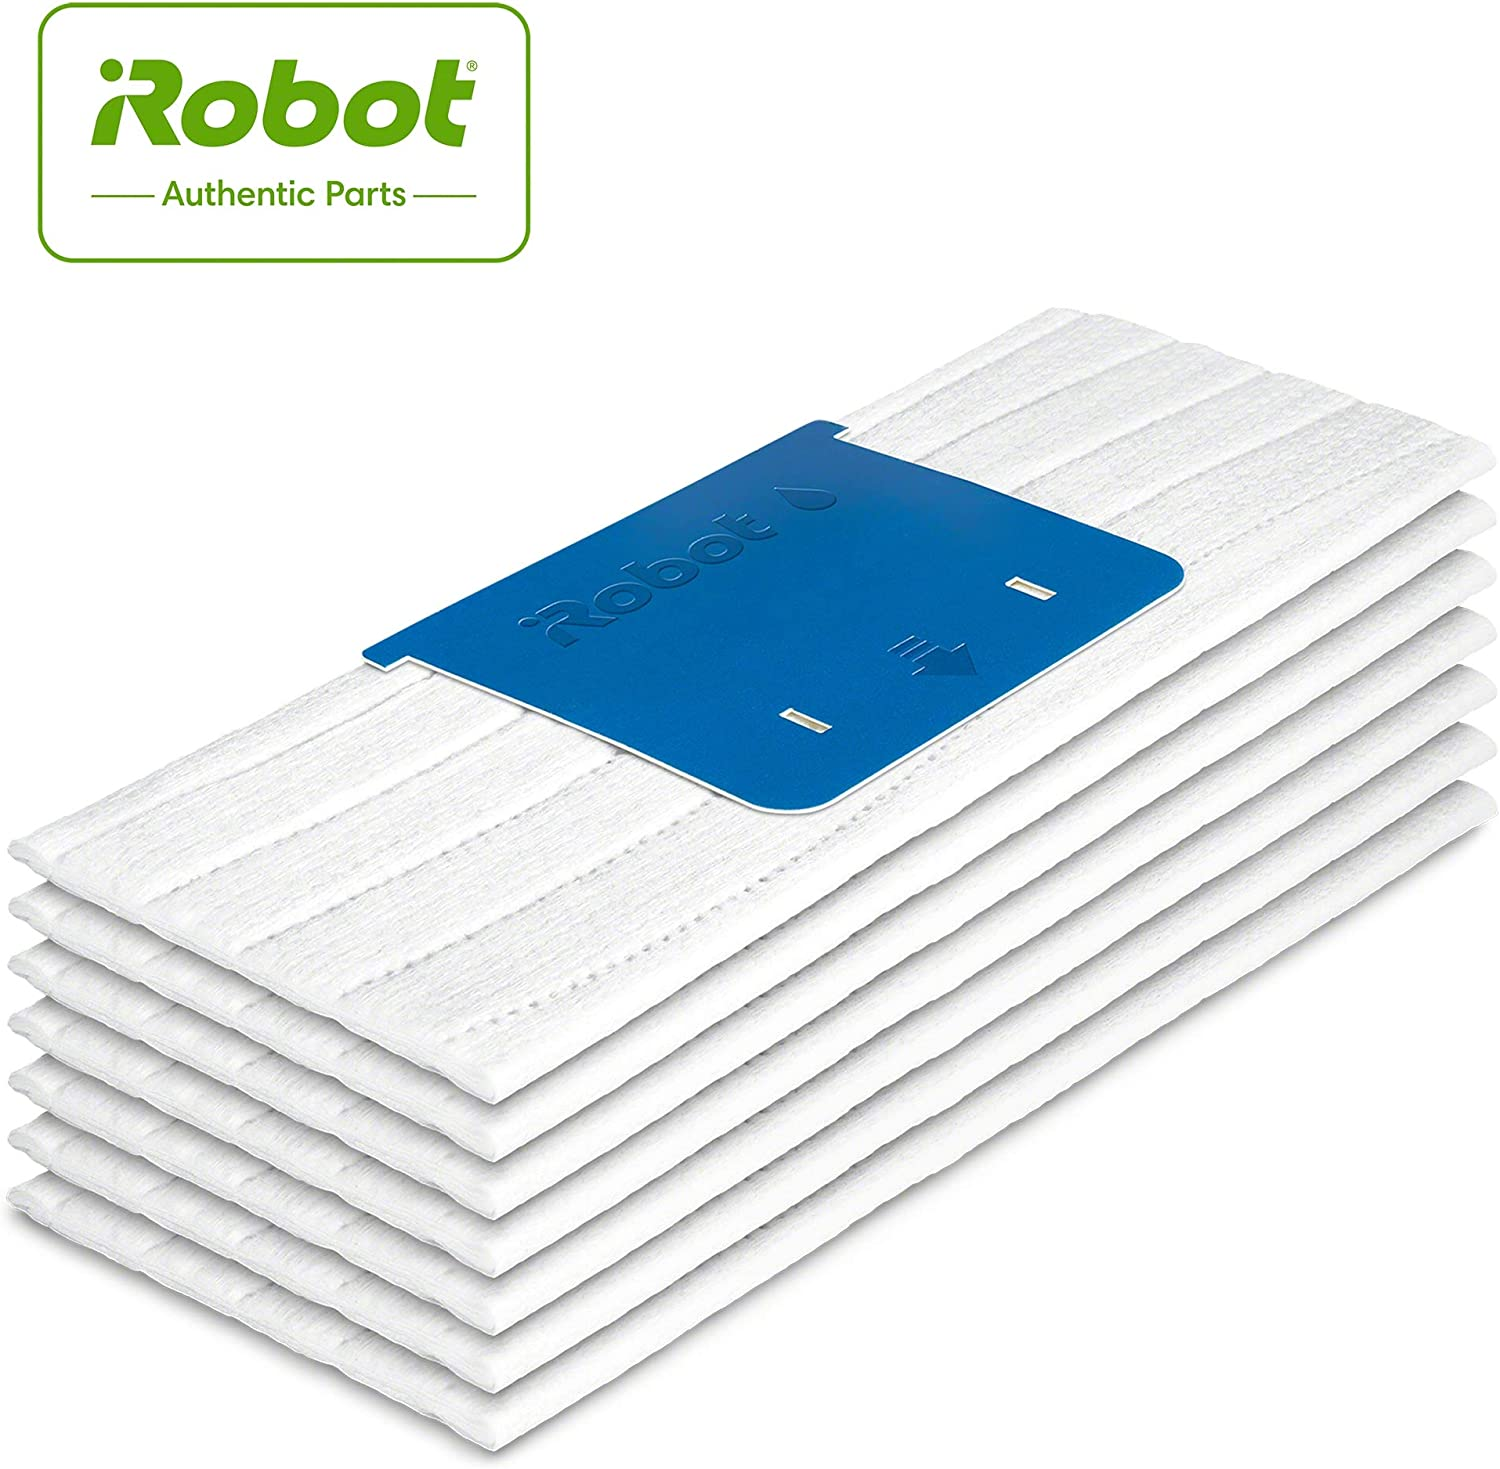 iRobot Authentic Replacement Parts Braava jet m Series Washable Wet Mopping Pad